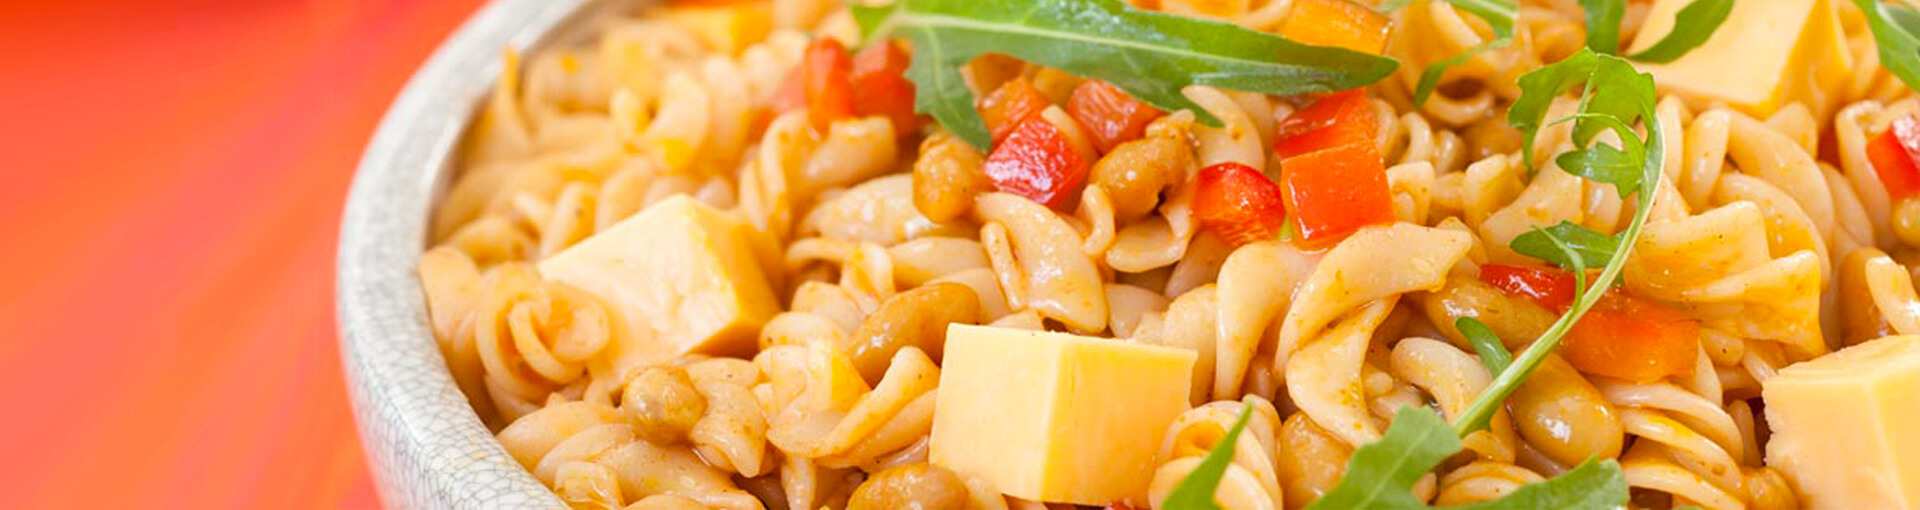 Pasta Salad with KOO Baked Beans